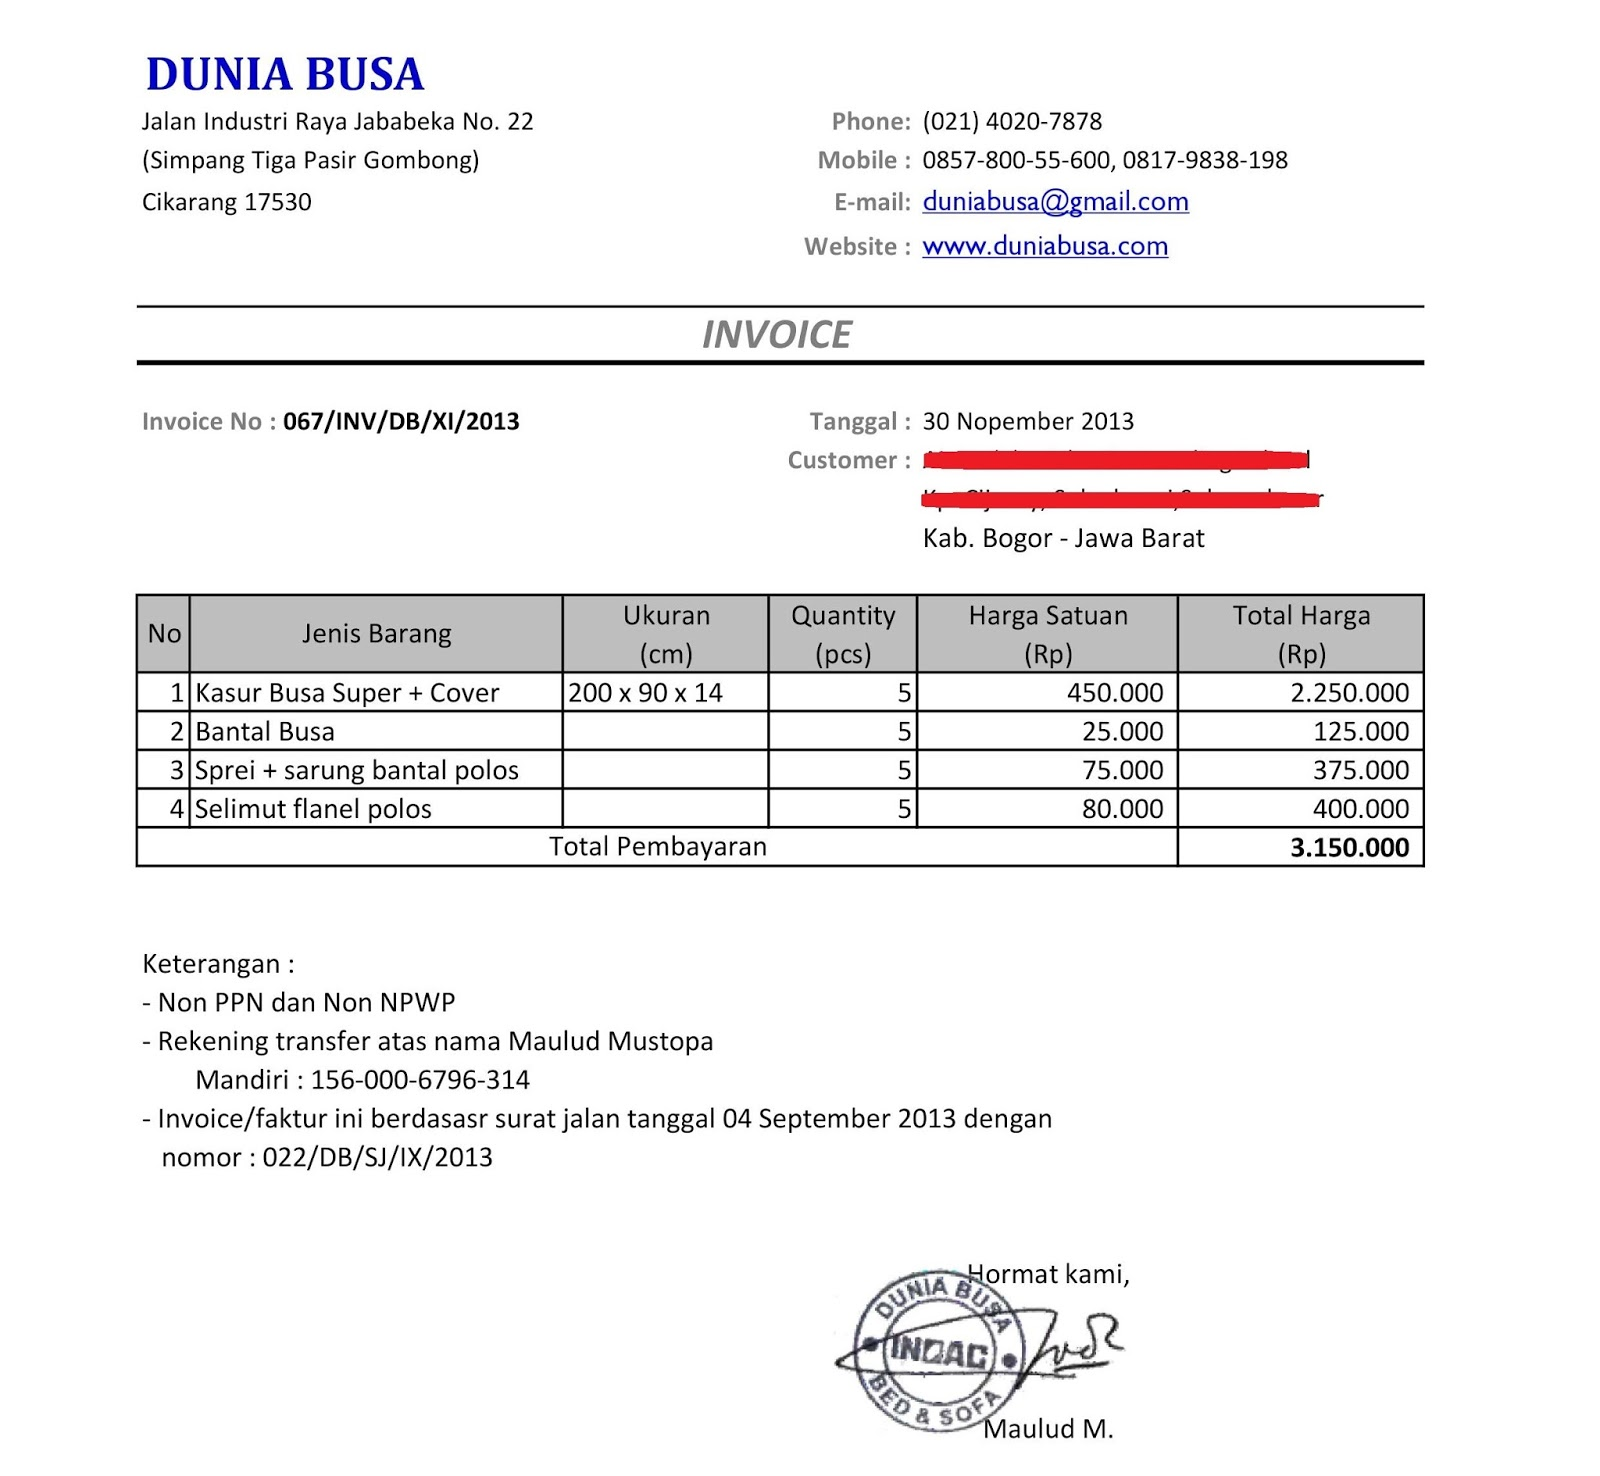 Usdgus  Scenic Free Invoice Online  Create Invoice Online  Invoice Template  With Outstanding Contoh Format Invoice Atau Surat Tagihan  Brankas Arsip  Free Invoice Online With Awesome Quick Books Invoices Also Electronic Invoice Software In Addition Invoice Doc Template And Wholesale Invoice Template As Well As Nissan Rogue Invoice Additionally Blank Sales Invoice From Sklepco With Usdgus  Outstanding Free Invoice Online  Create Invoice Online  Invoice Template  With Awesome Contoh Format Invoice Atau Surat Tagihan  Brankas Arsip  Free Invoice Online And Scenic Quick Books Invoices Also Electronic Invoice Software In Addition Invoice Doc Template From Sklepco